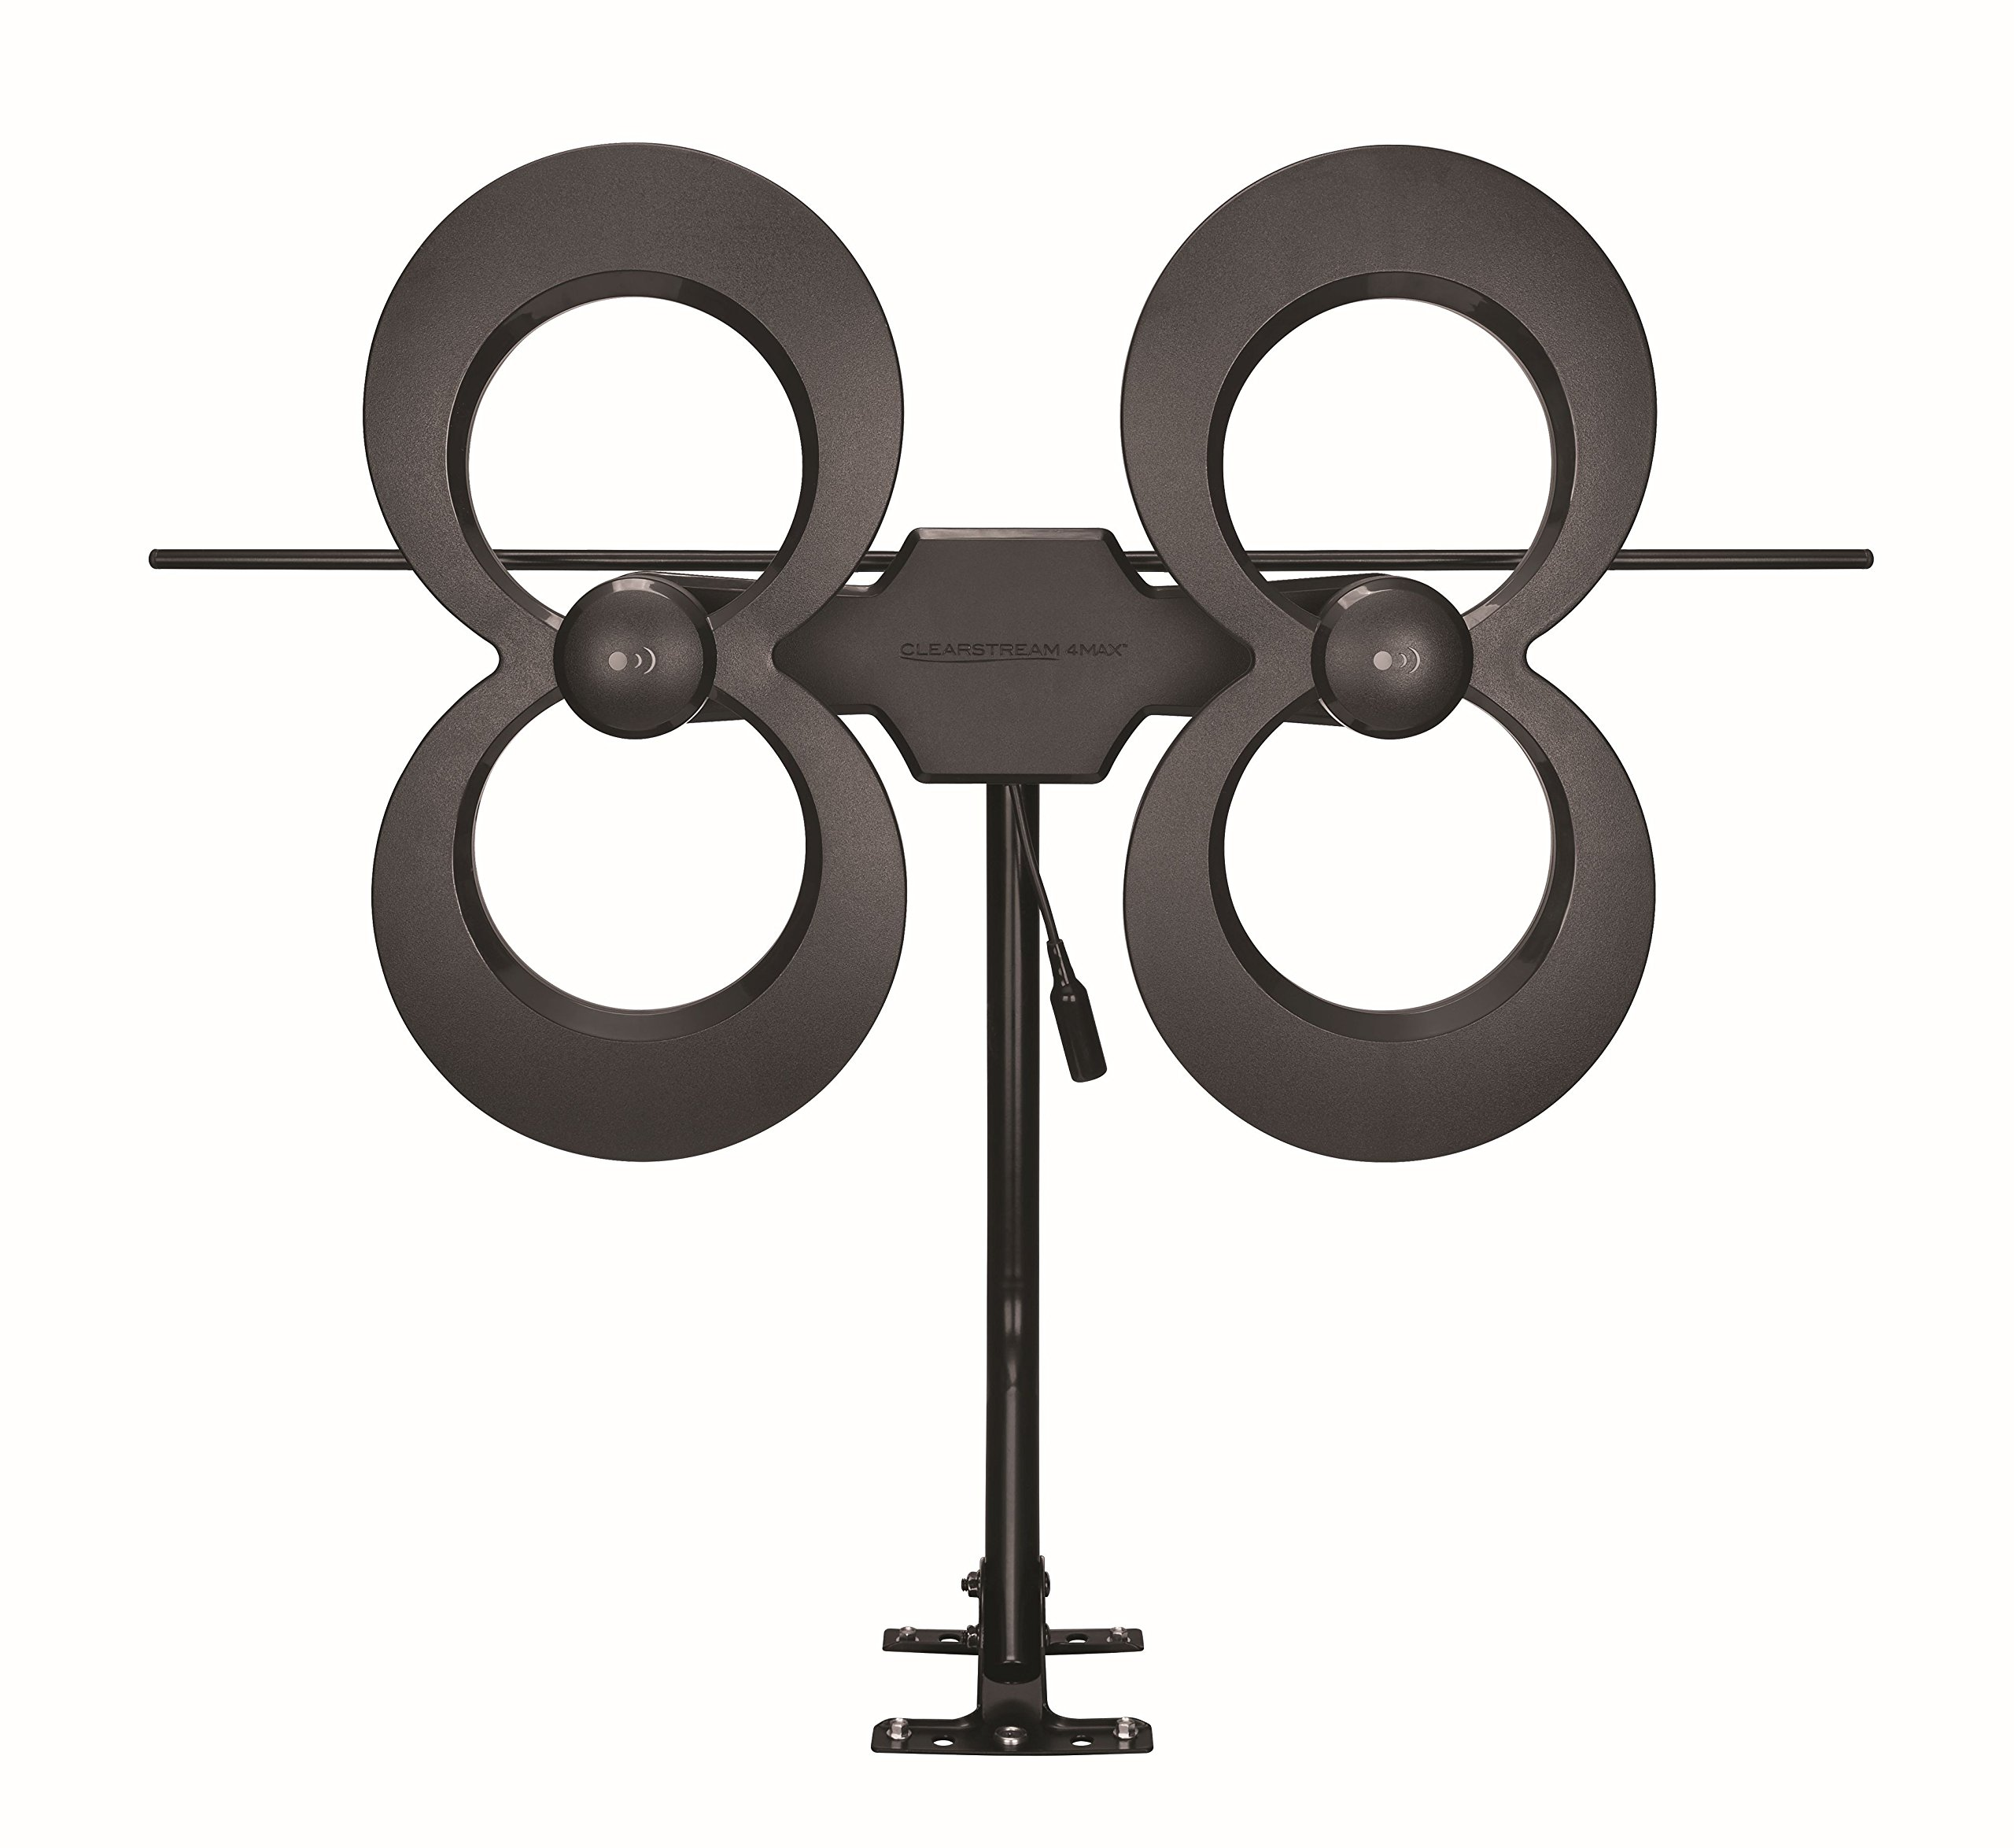 Antennas Direct ClearStream 4MAX TV Antenna, 70+ Mile Range, UFH/VHF, Multi-directional, Indoor, Attic, Outdoor, Mast w/Pivoting Base/Hardware/Adjustable Clamp/Sealing Pads, 4K Ready, Black - C4MVJ by Antennas Direct